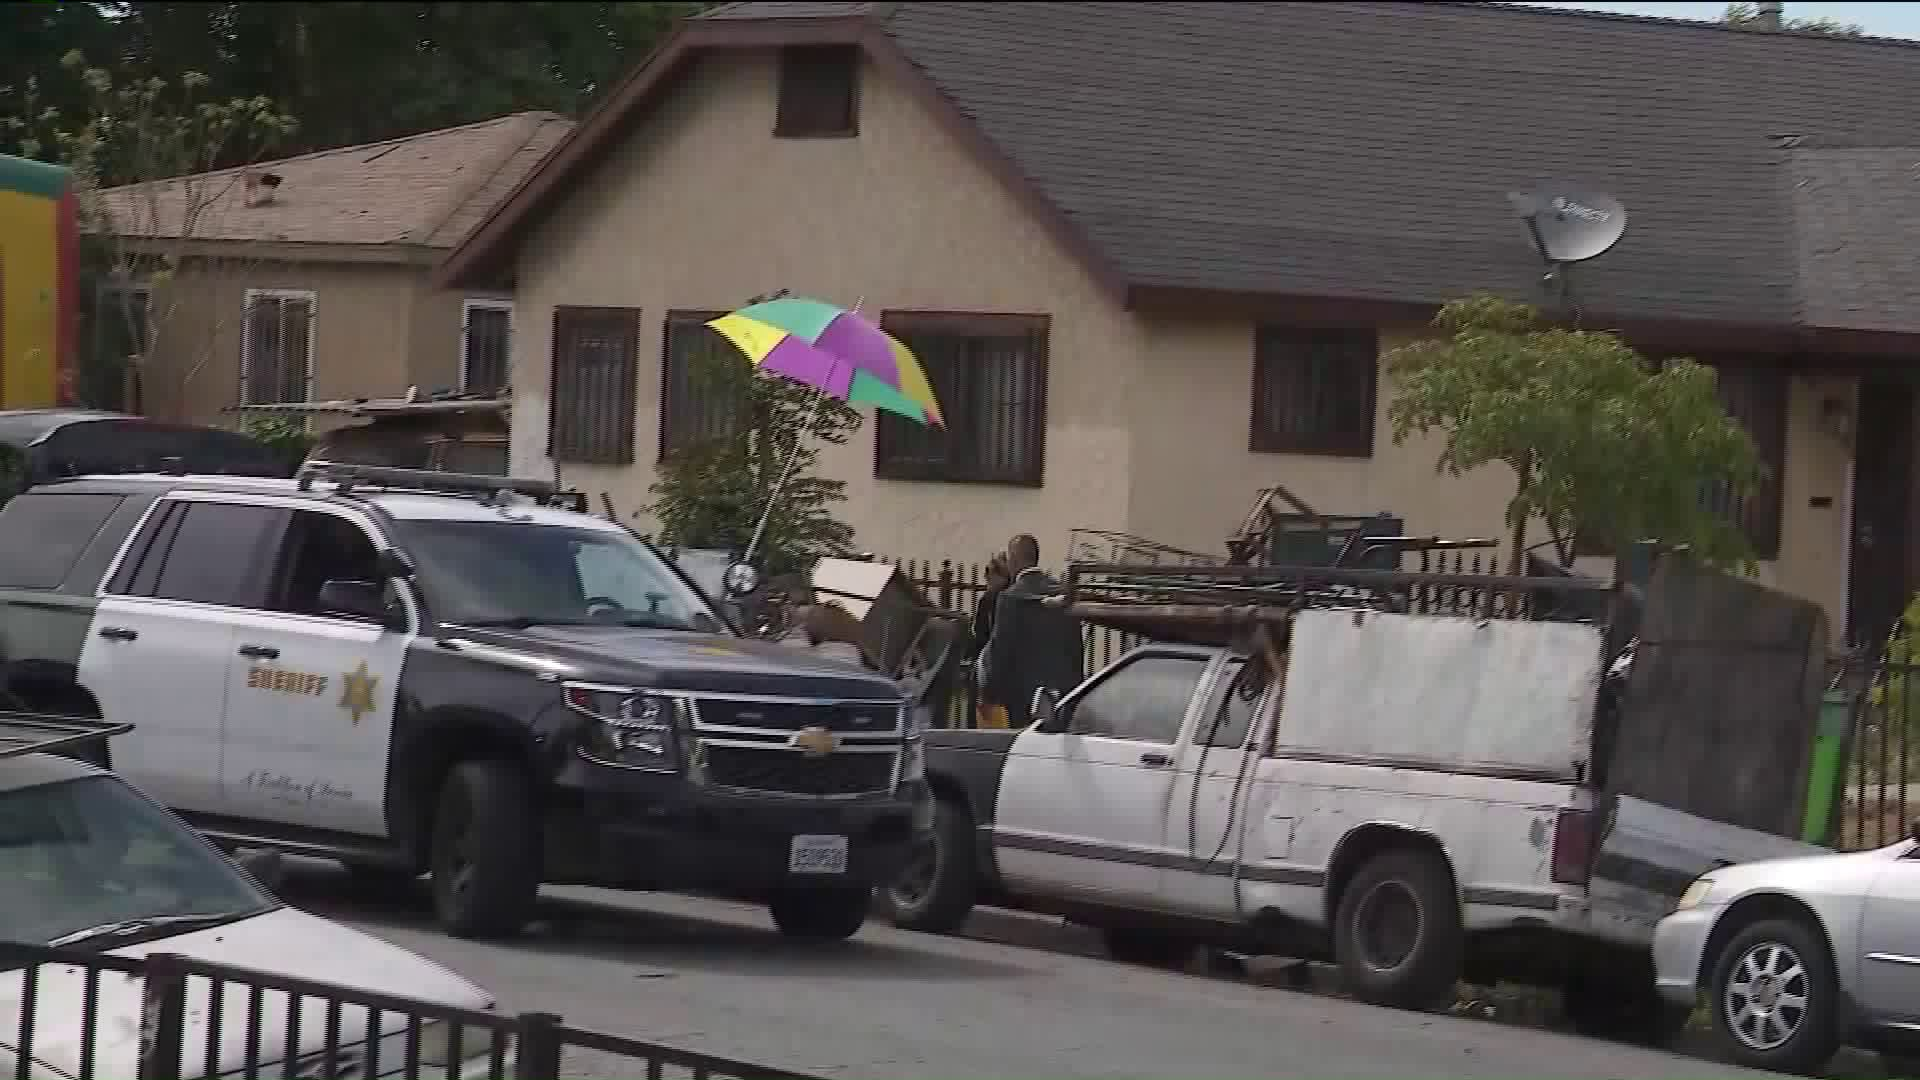 Investigators work at the scene of a fatal stabbing in the 1100 block of East 91st Street in South Los Angeles on June 29, 2019. (Credit: KTLA)